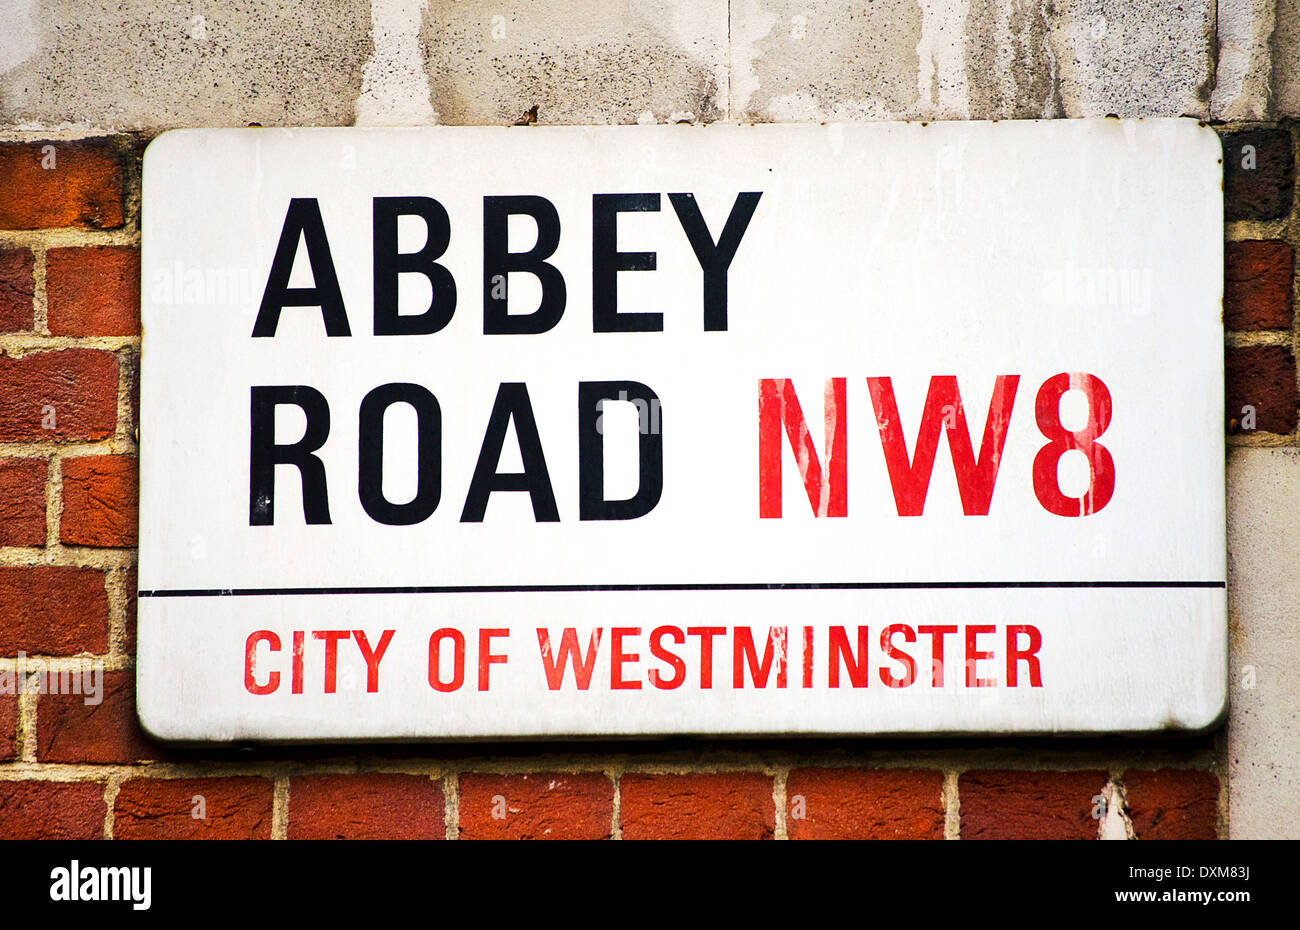 Abbey Road - Stock Image